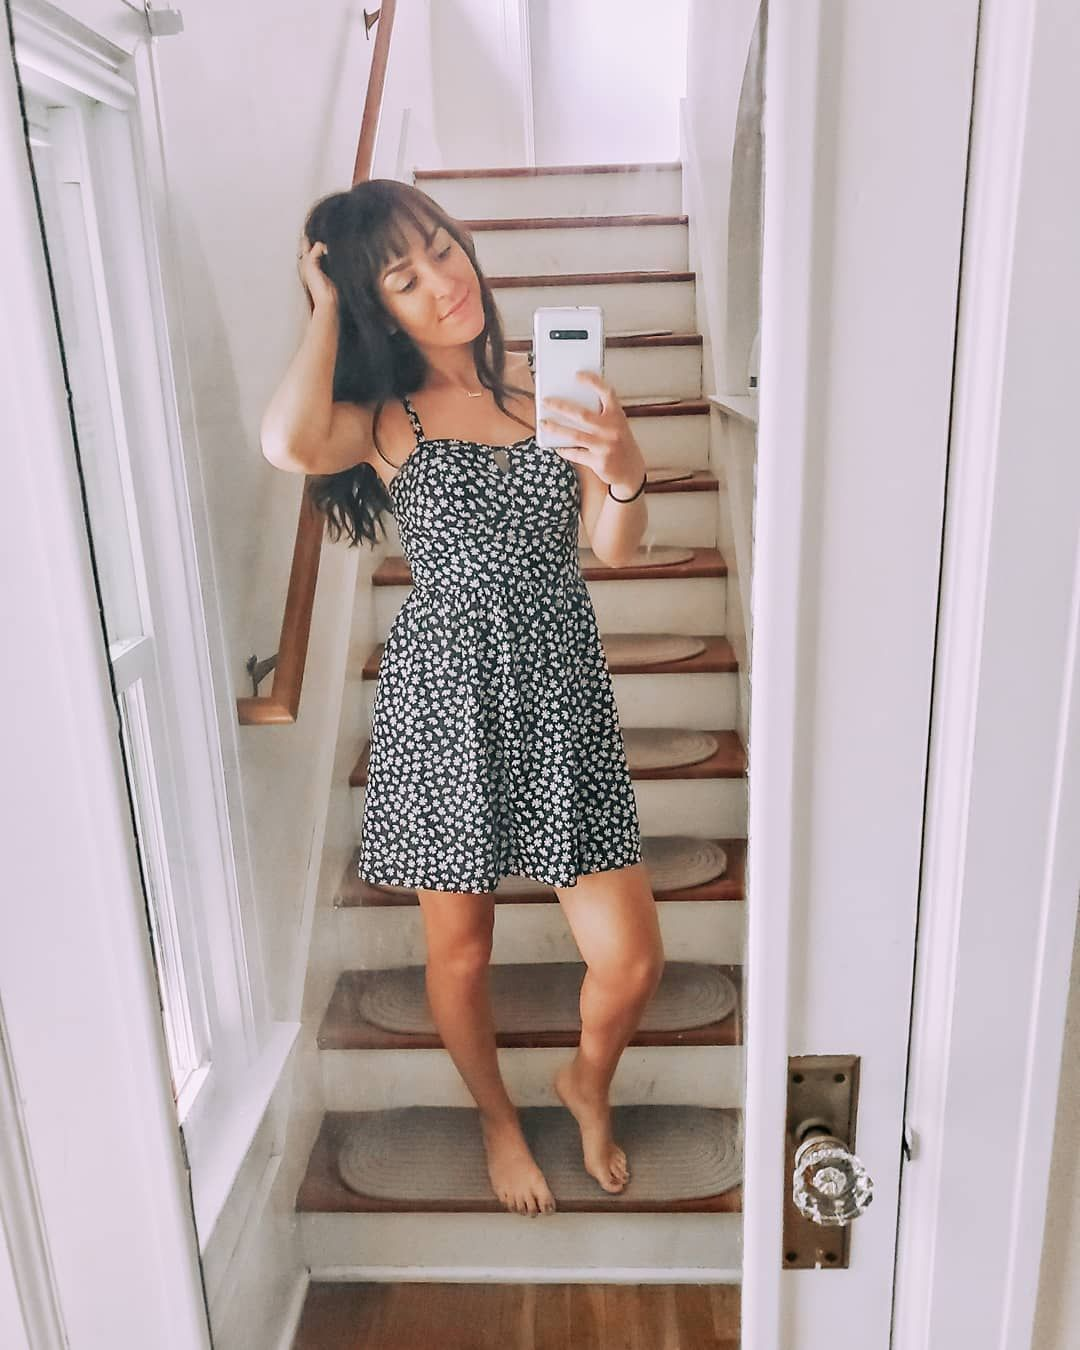 #diy Do you ever feel crazy spontaneous and then regret it later I cut my own bangs againThey got an...